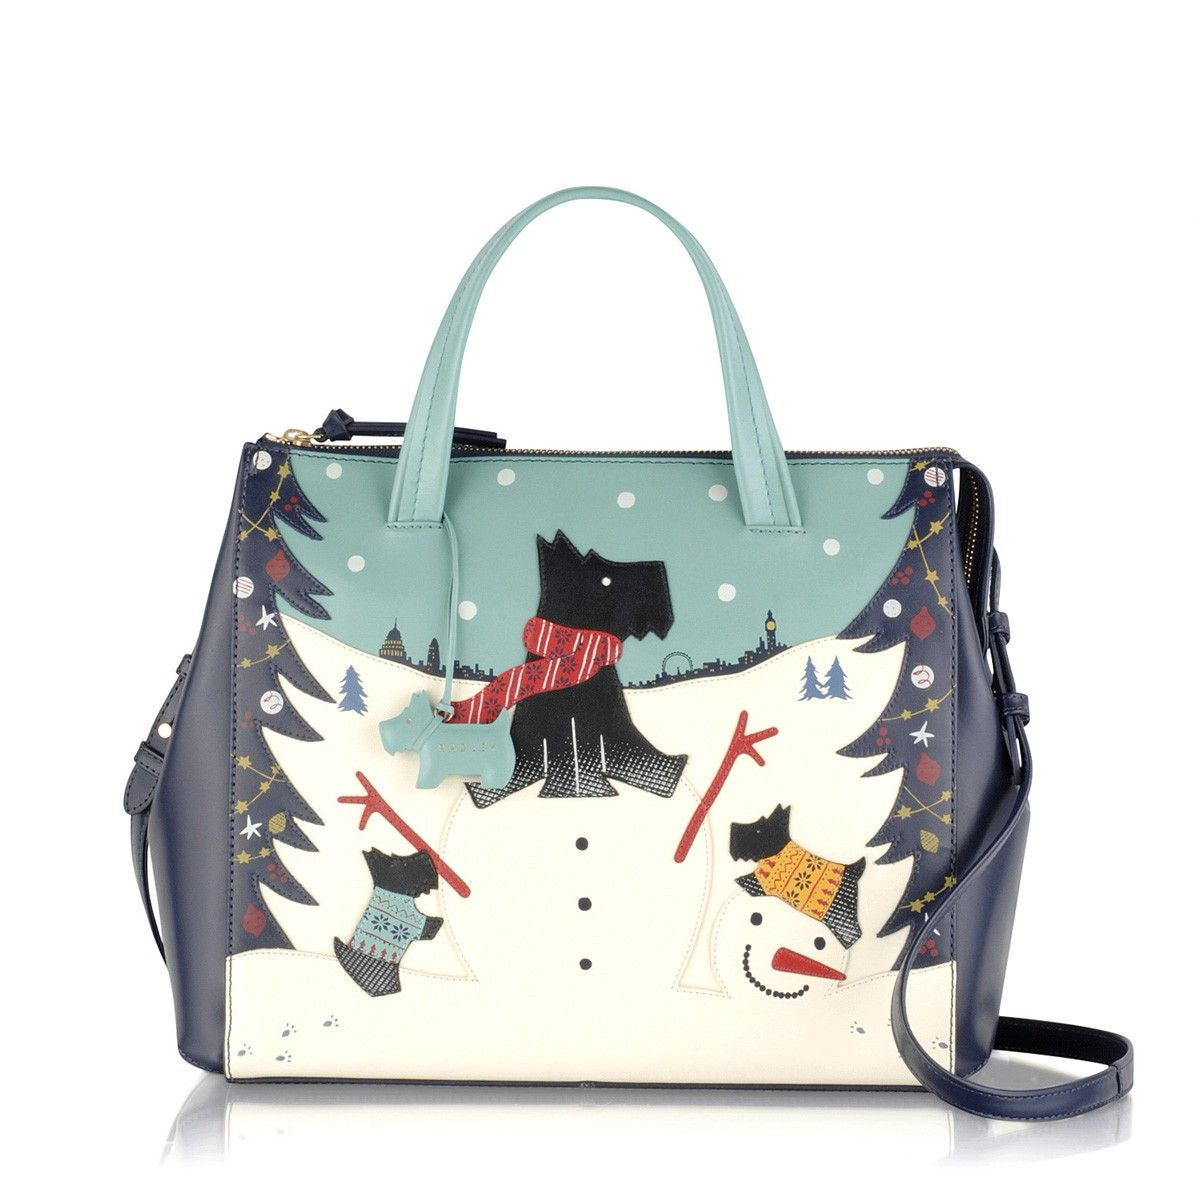 The Snow Days Large Zip Top Grab Is A Fabulous Limited Edition Picture Bag That S Sure To Spread Plenty Of Festive Cheer